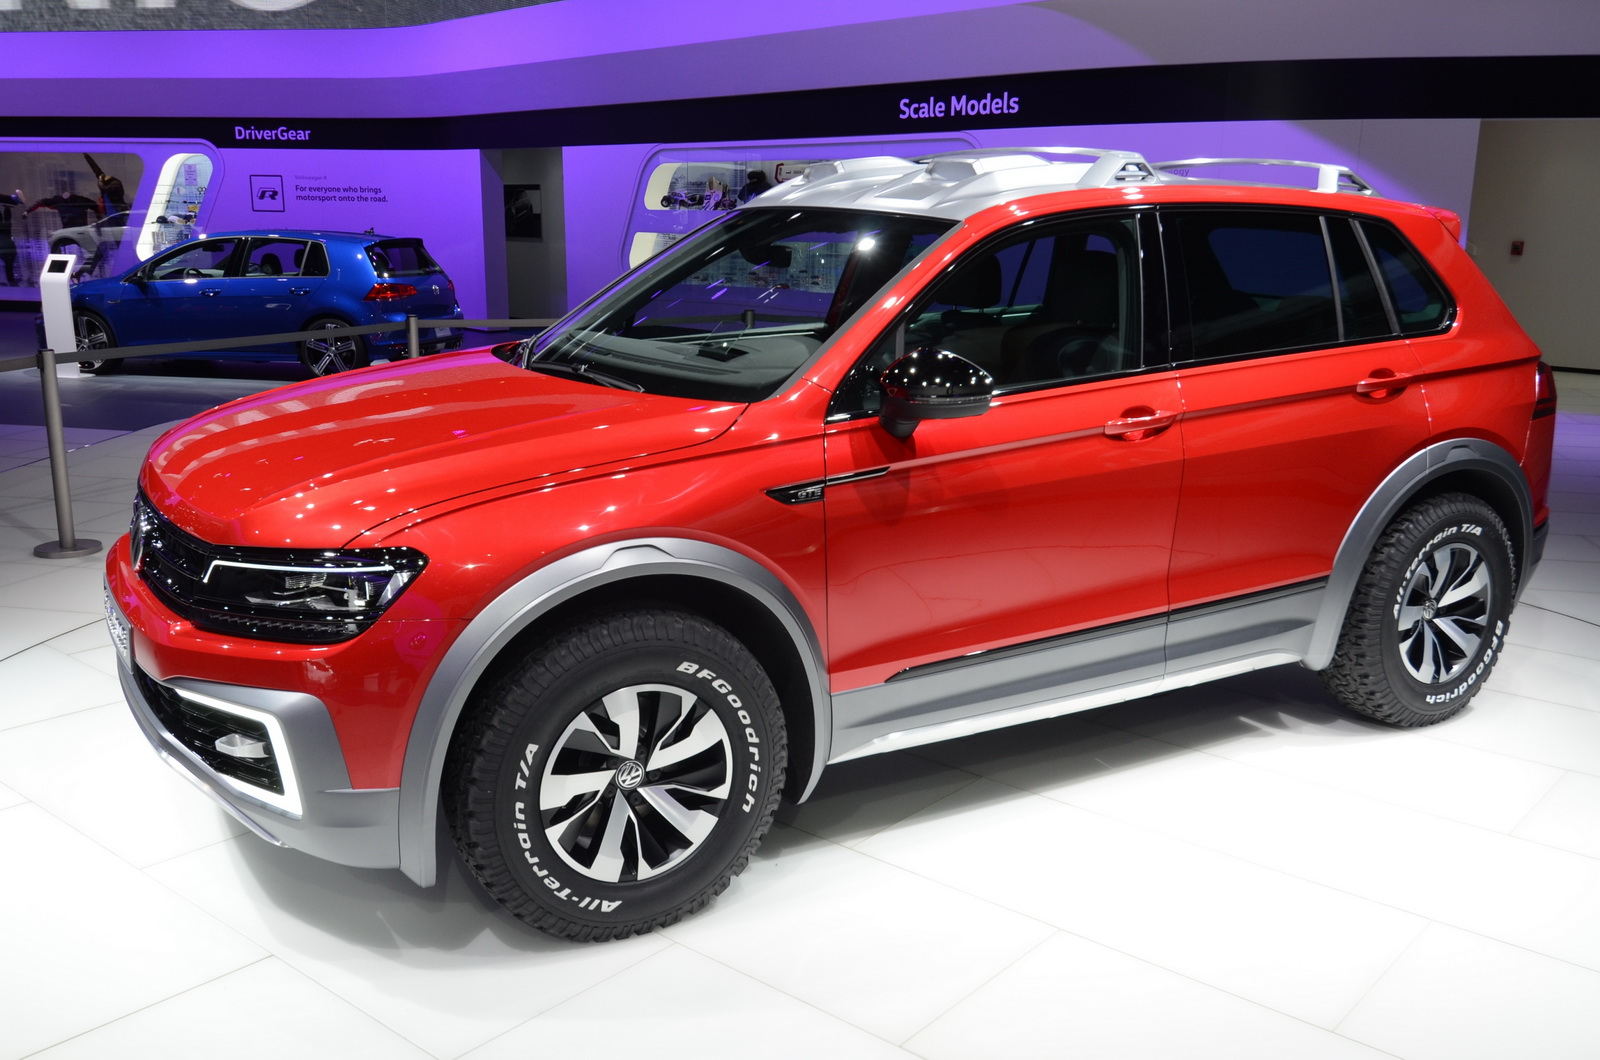 vw tiguan gte active is the most hairy chested member of the family carscoops. Black Bedroom Furniture Sets. Home Design Ideas